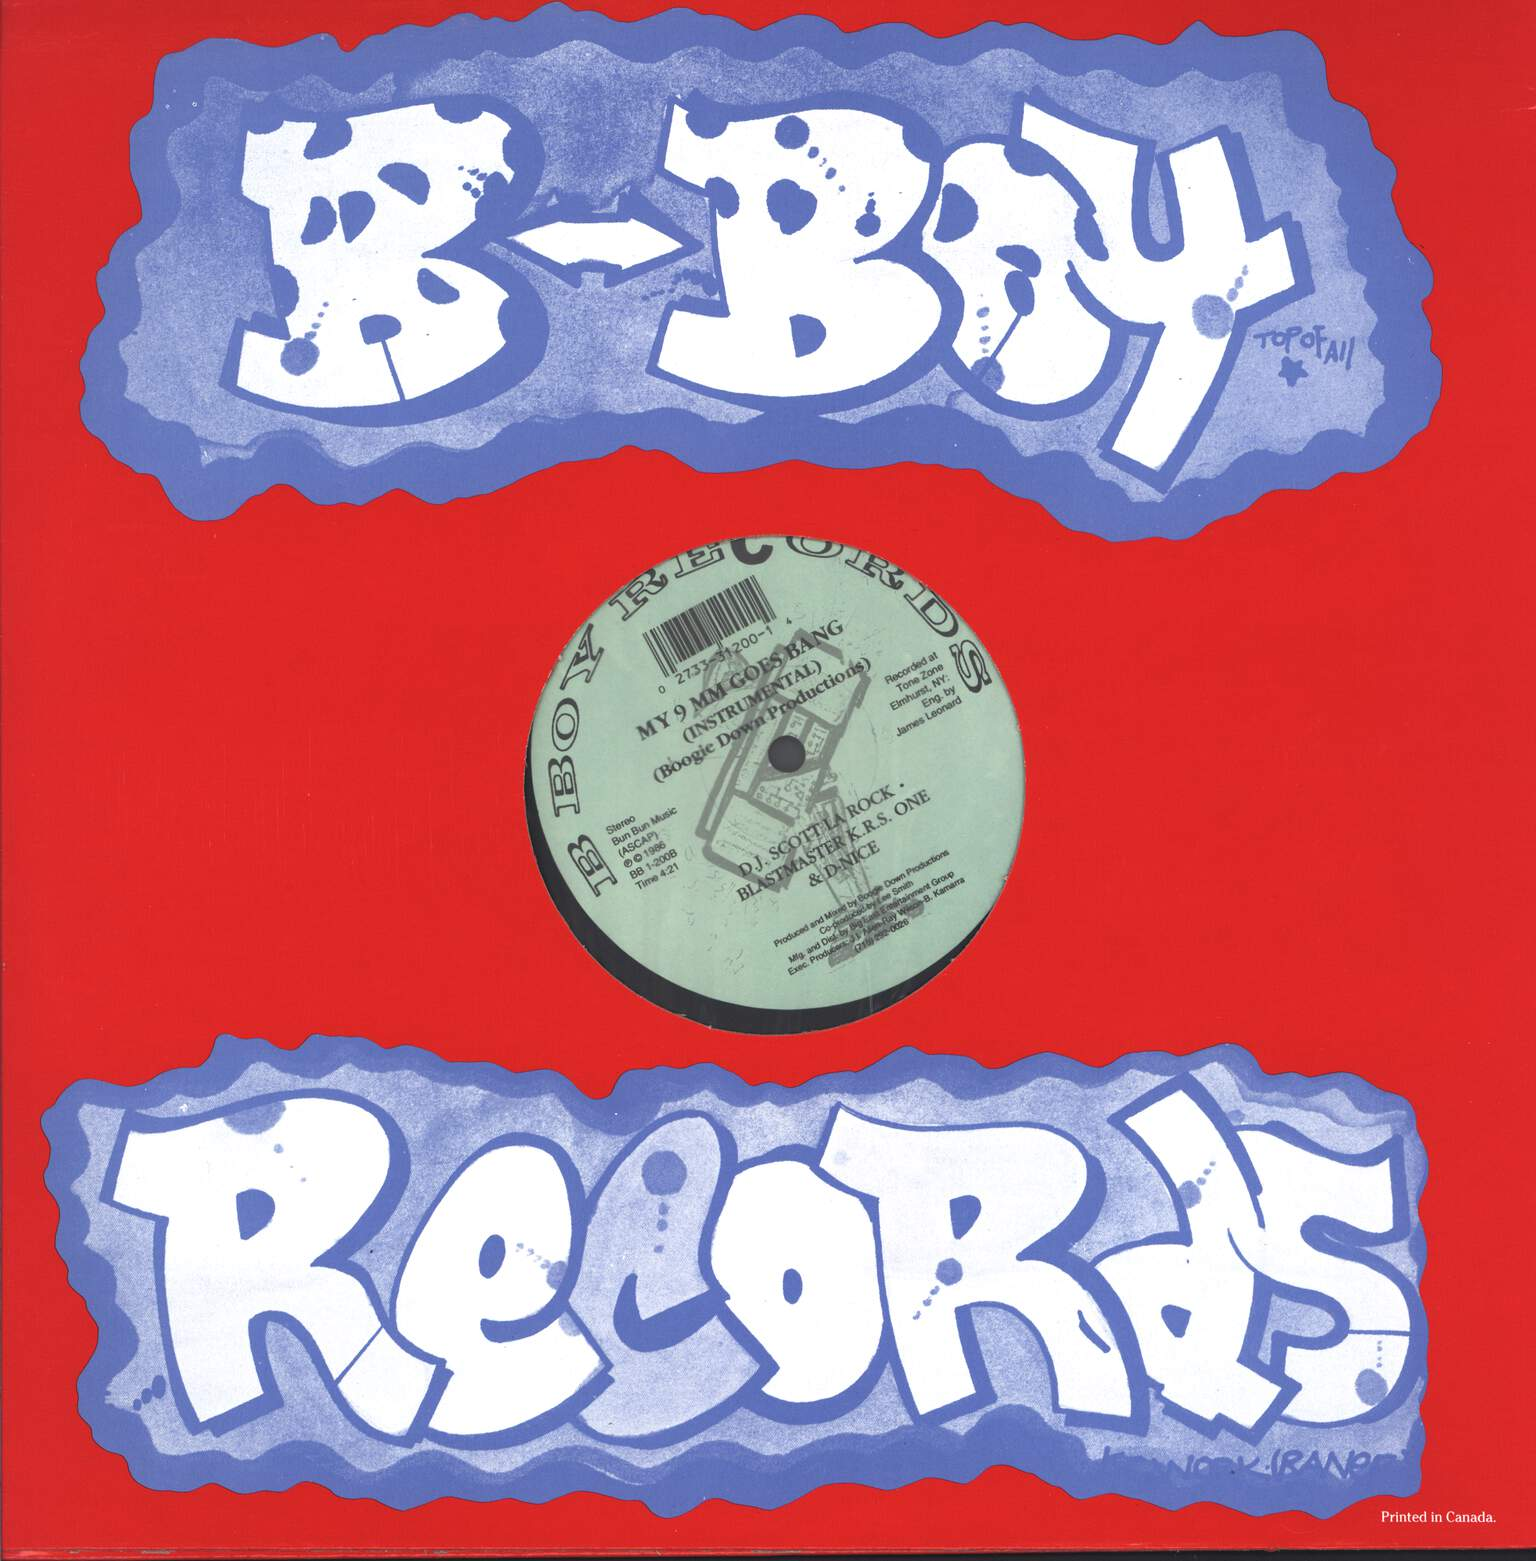 "Boogie Down Productions: My 9mm Goes Bang, 12"" Maxi Single (Vinyl)"